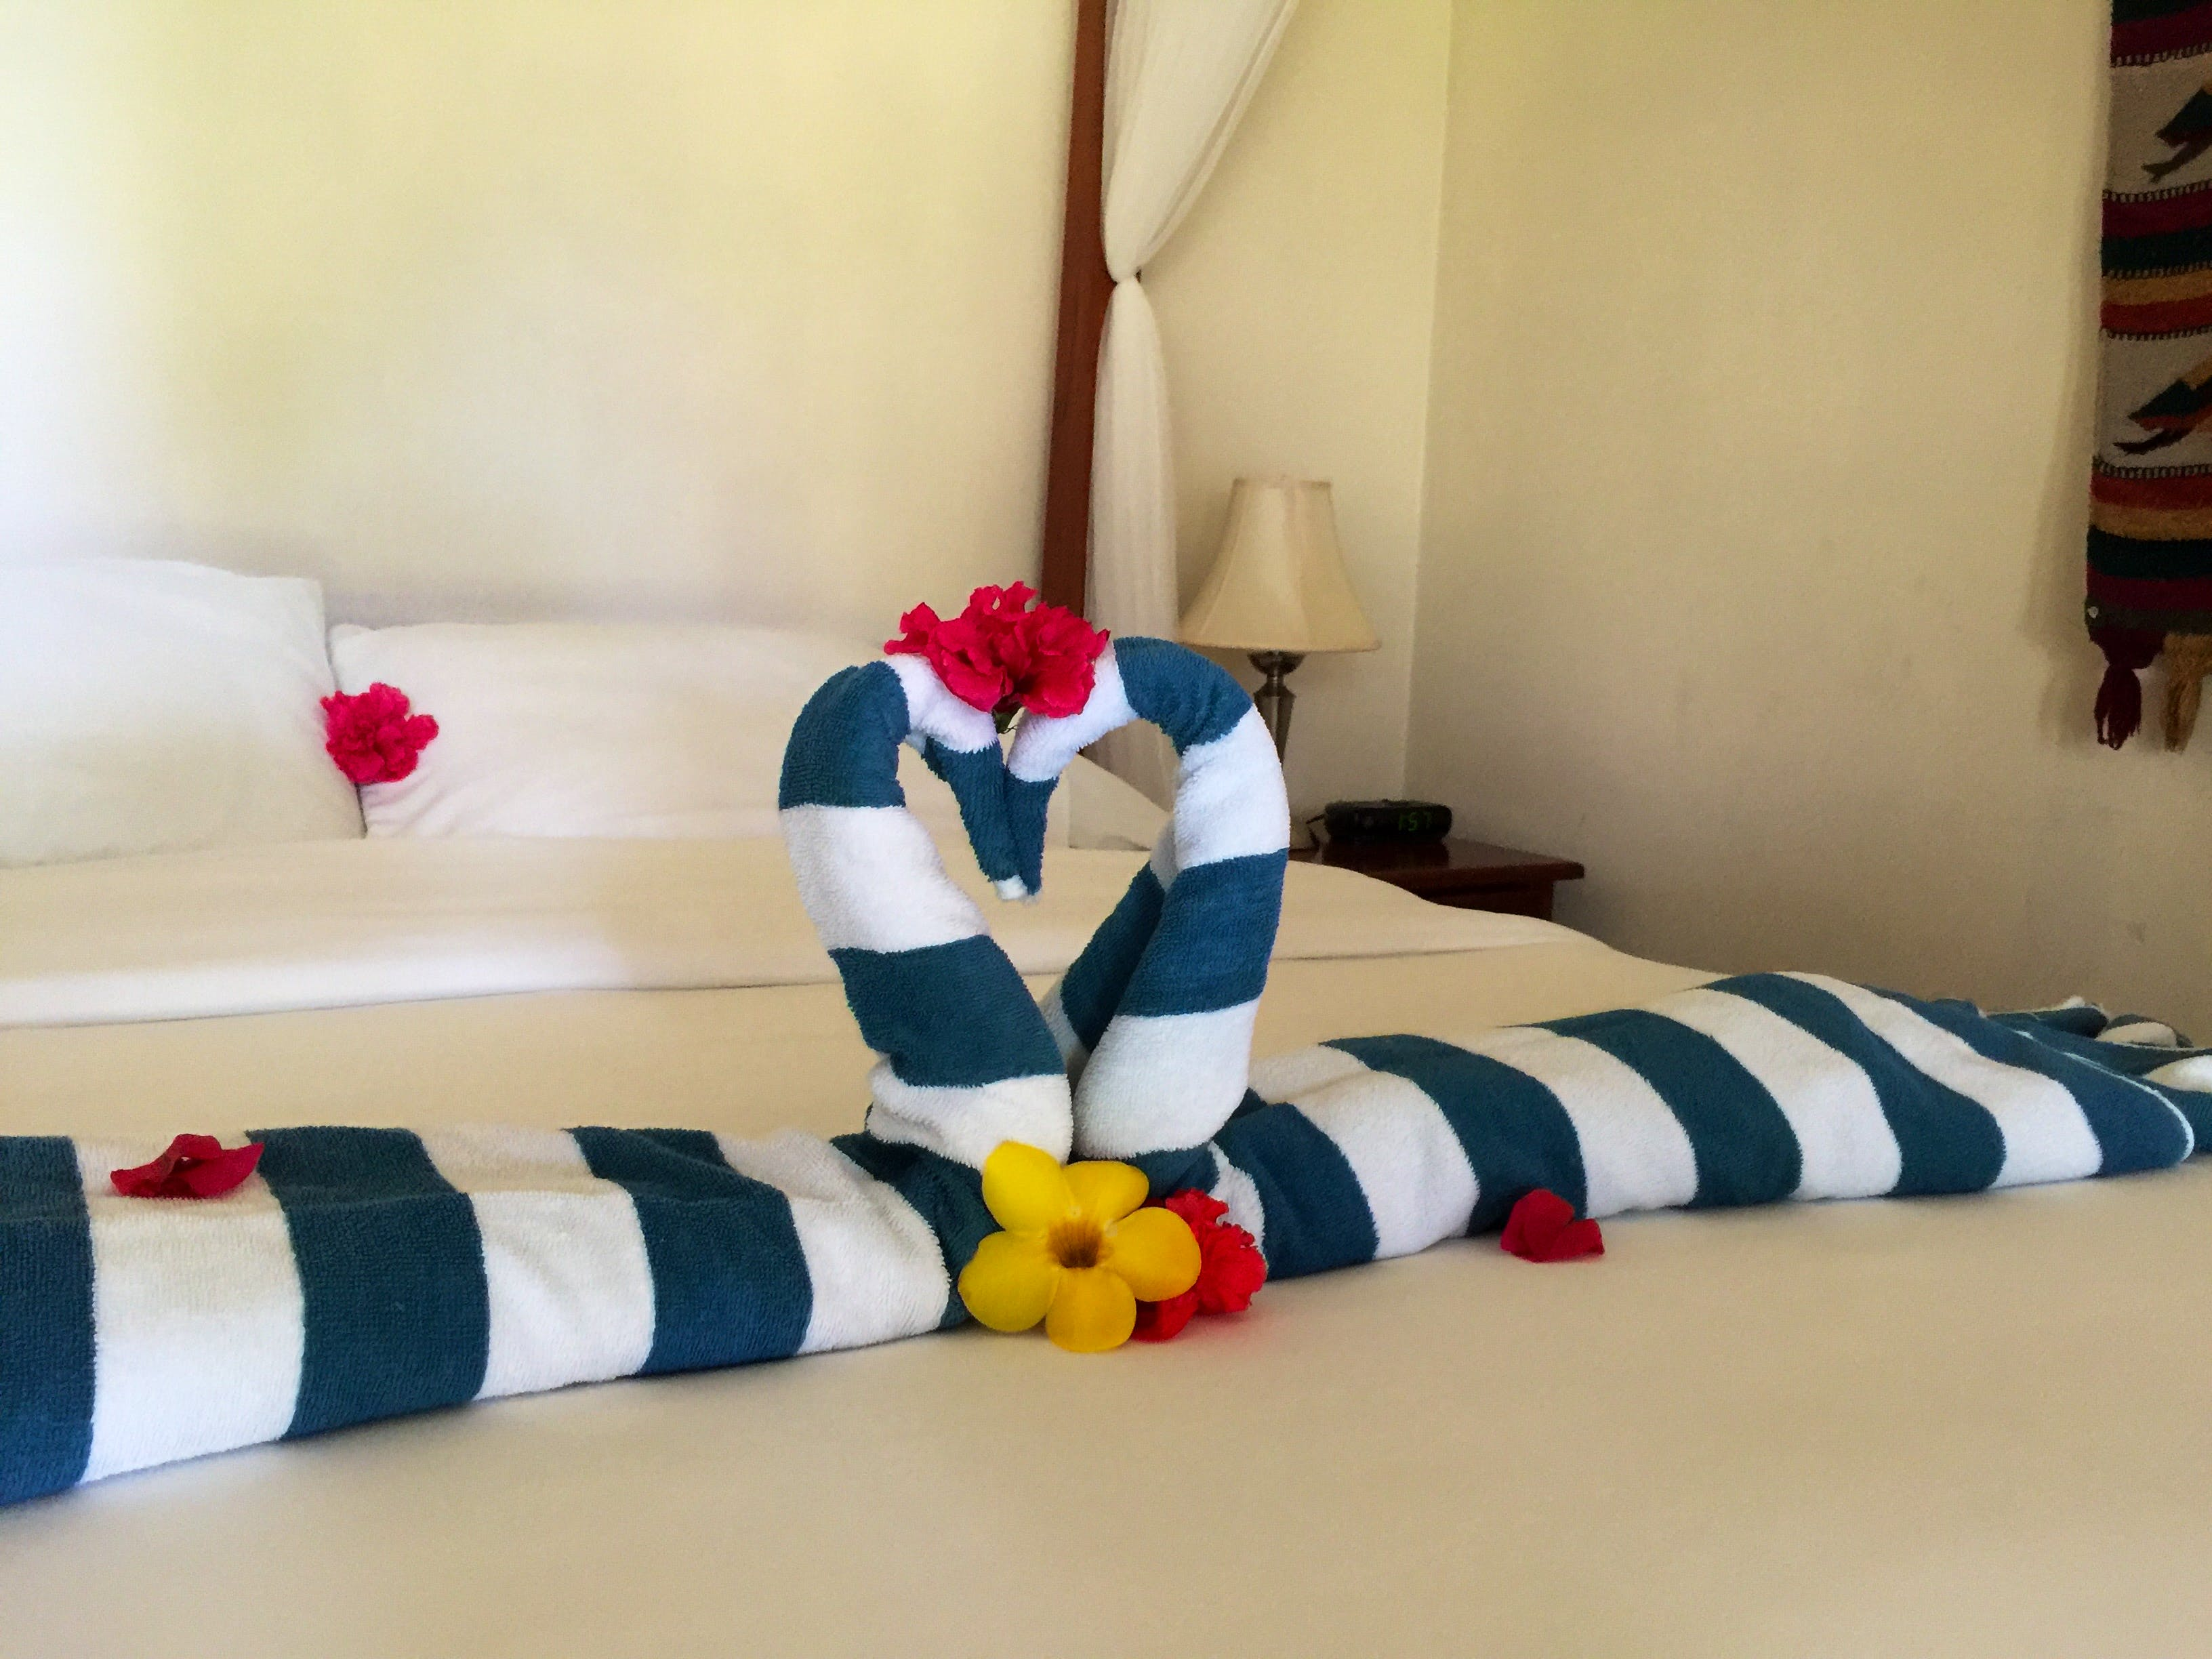 Towel animals on beds